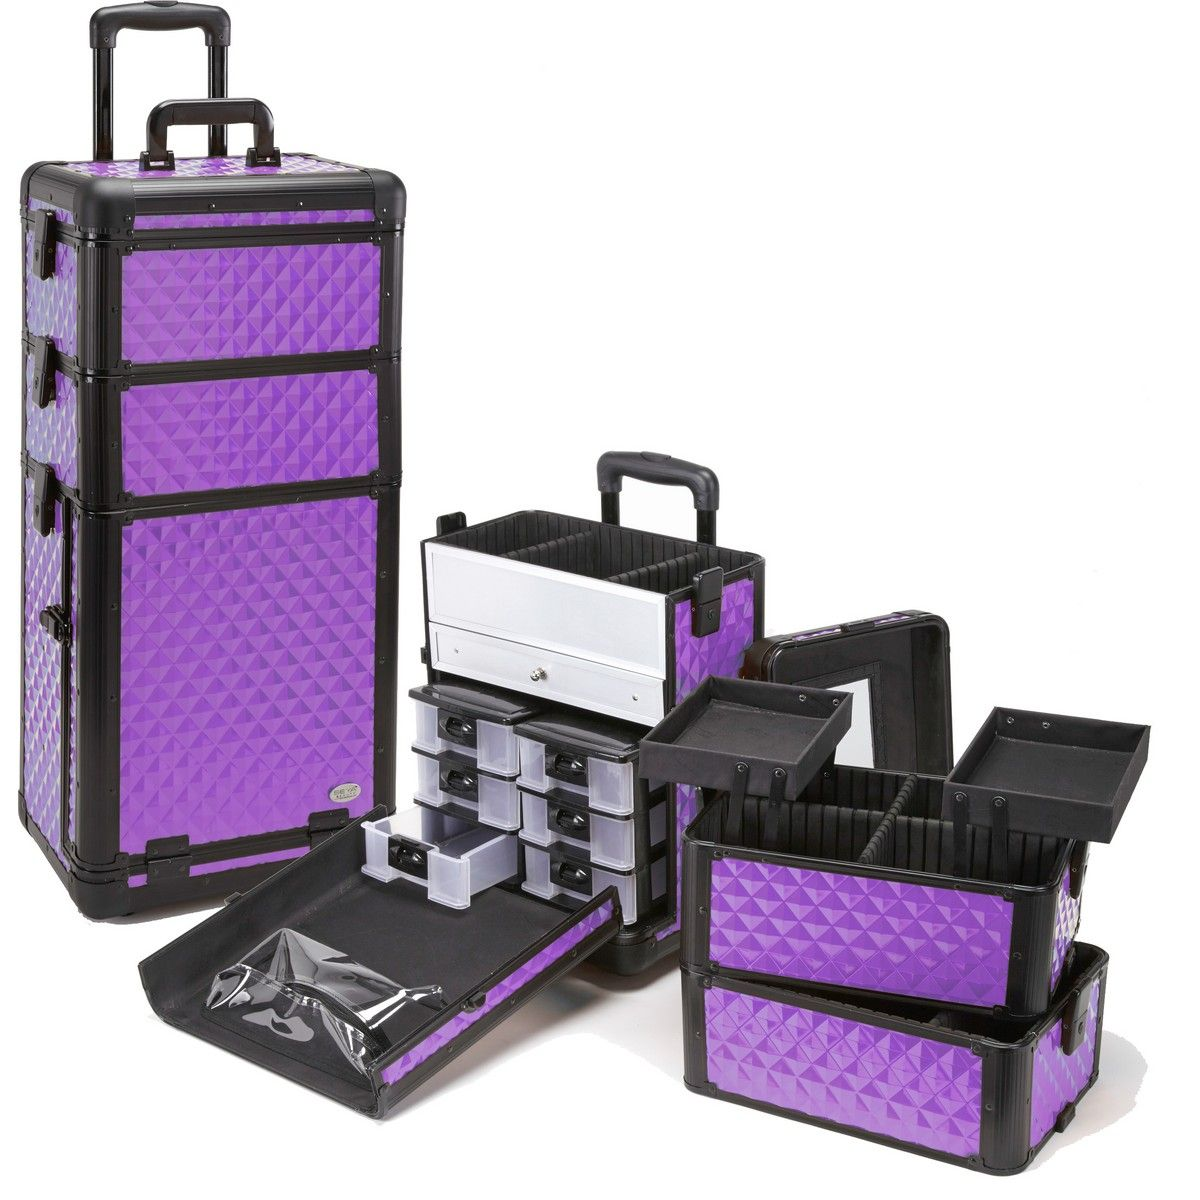 Purple Diamond Professional Rolling Makeup Case w/ Drawers